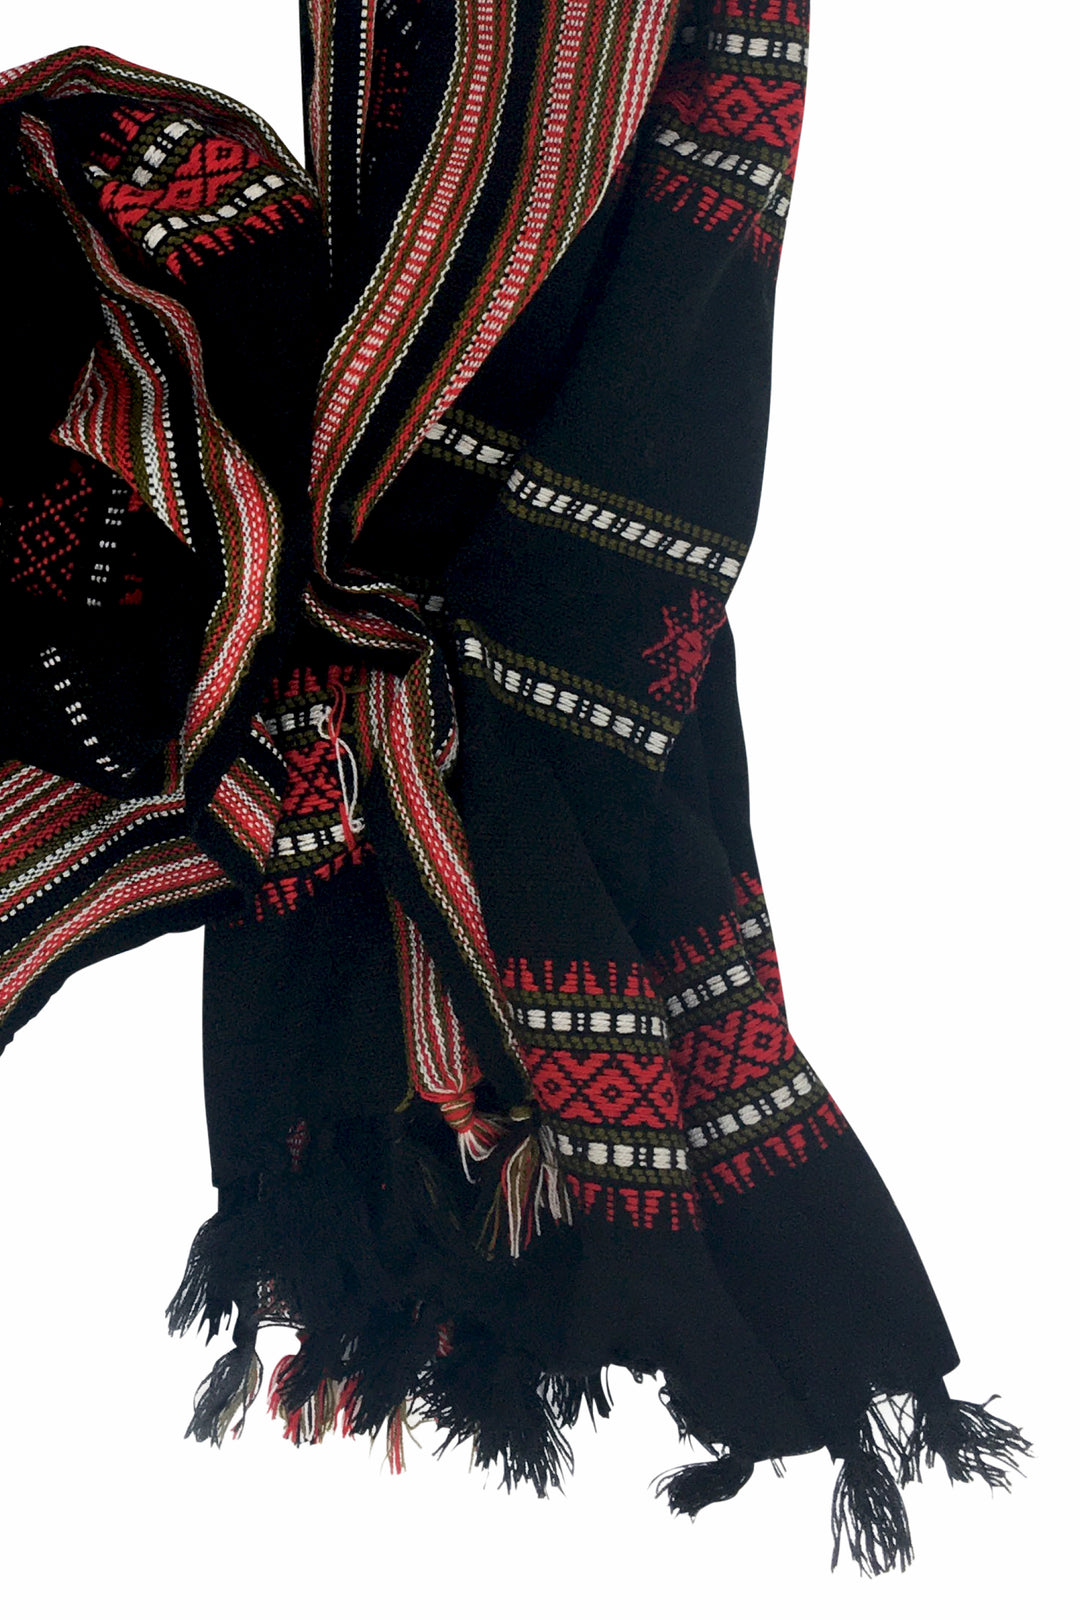 Kutch embroidered Wool Shawl Andhera